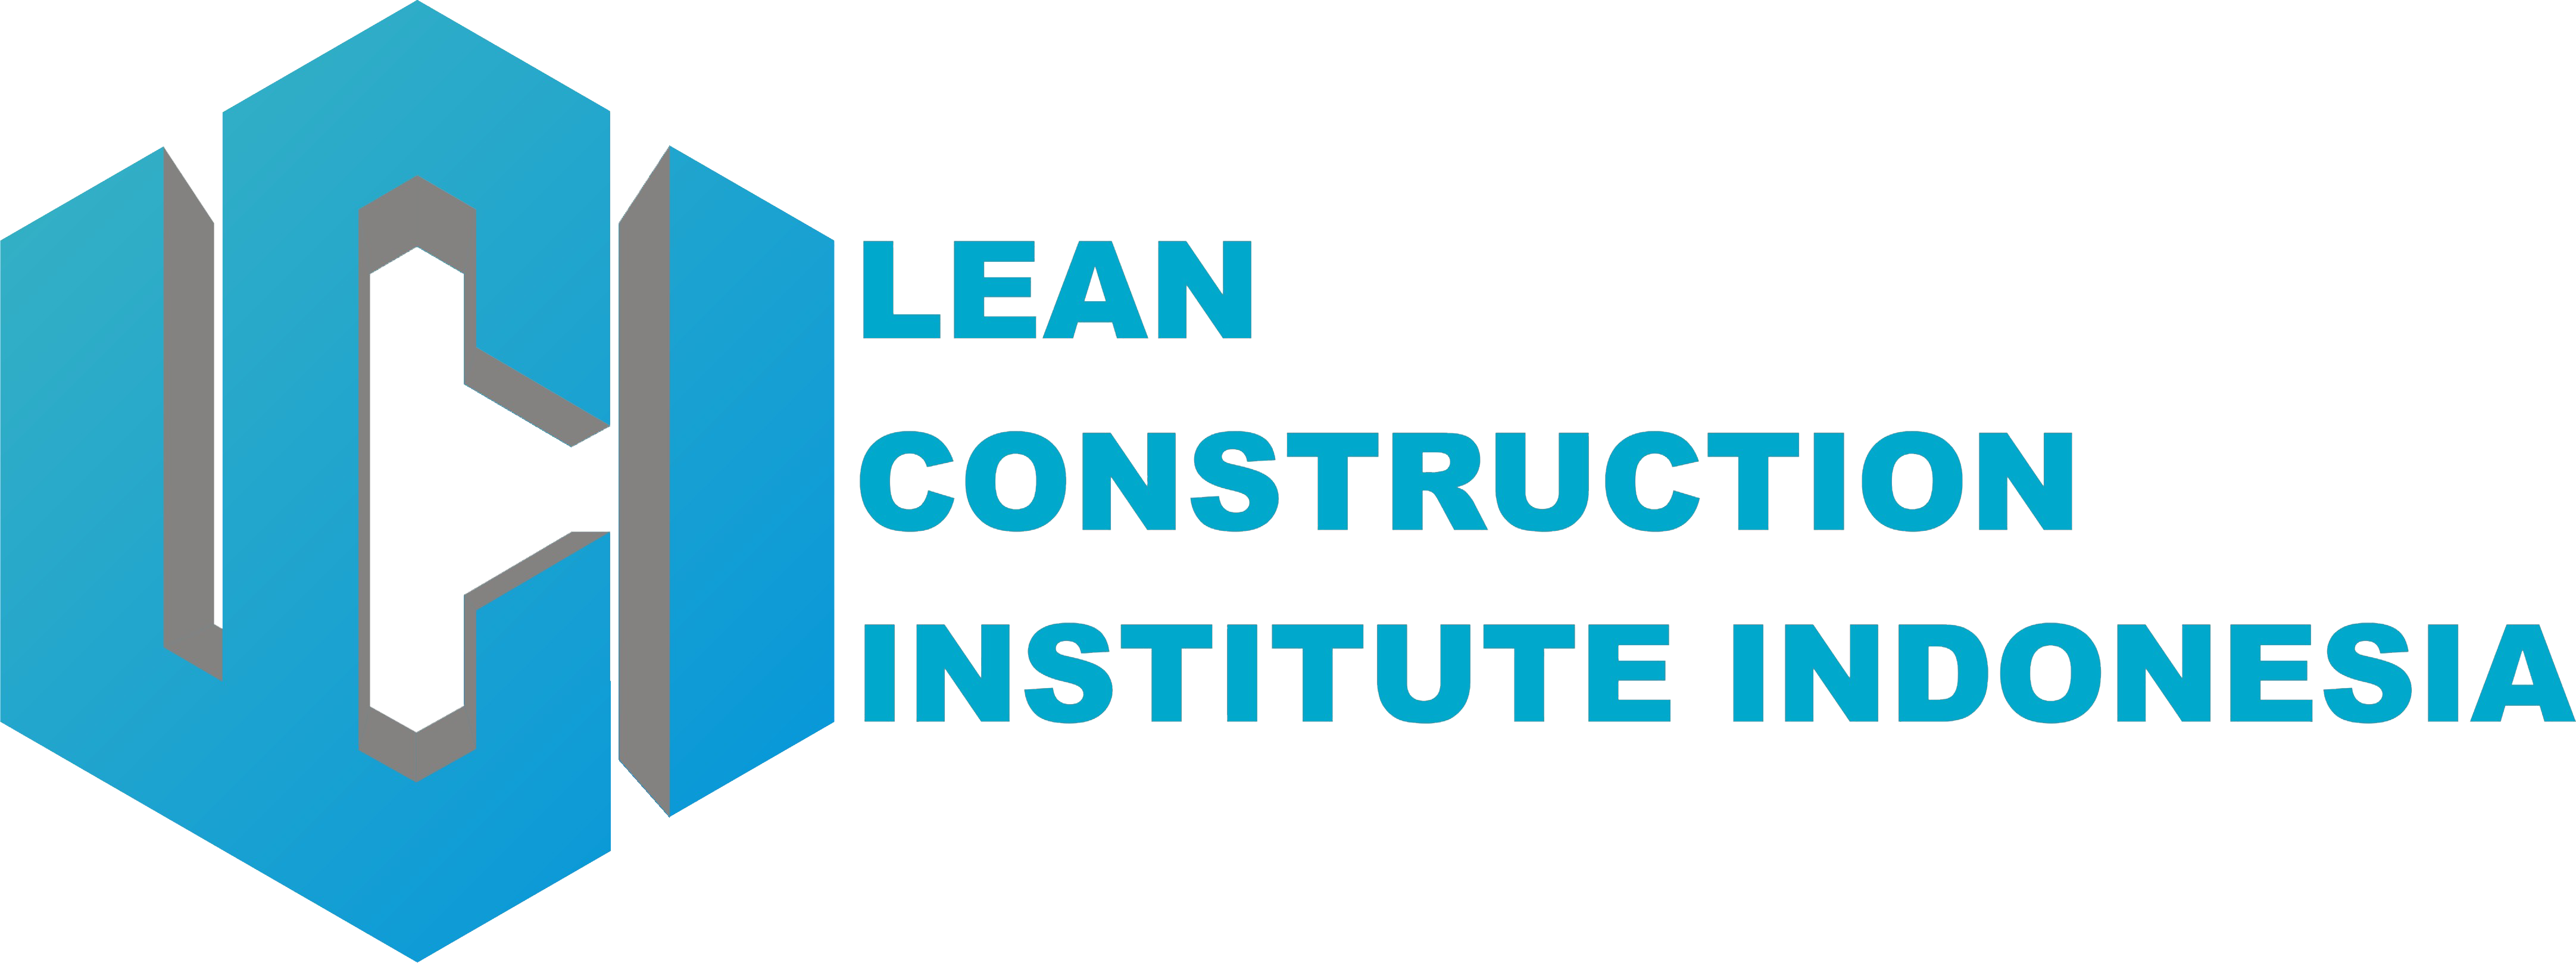 Lean Construction Institute Indonesia